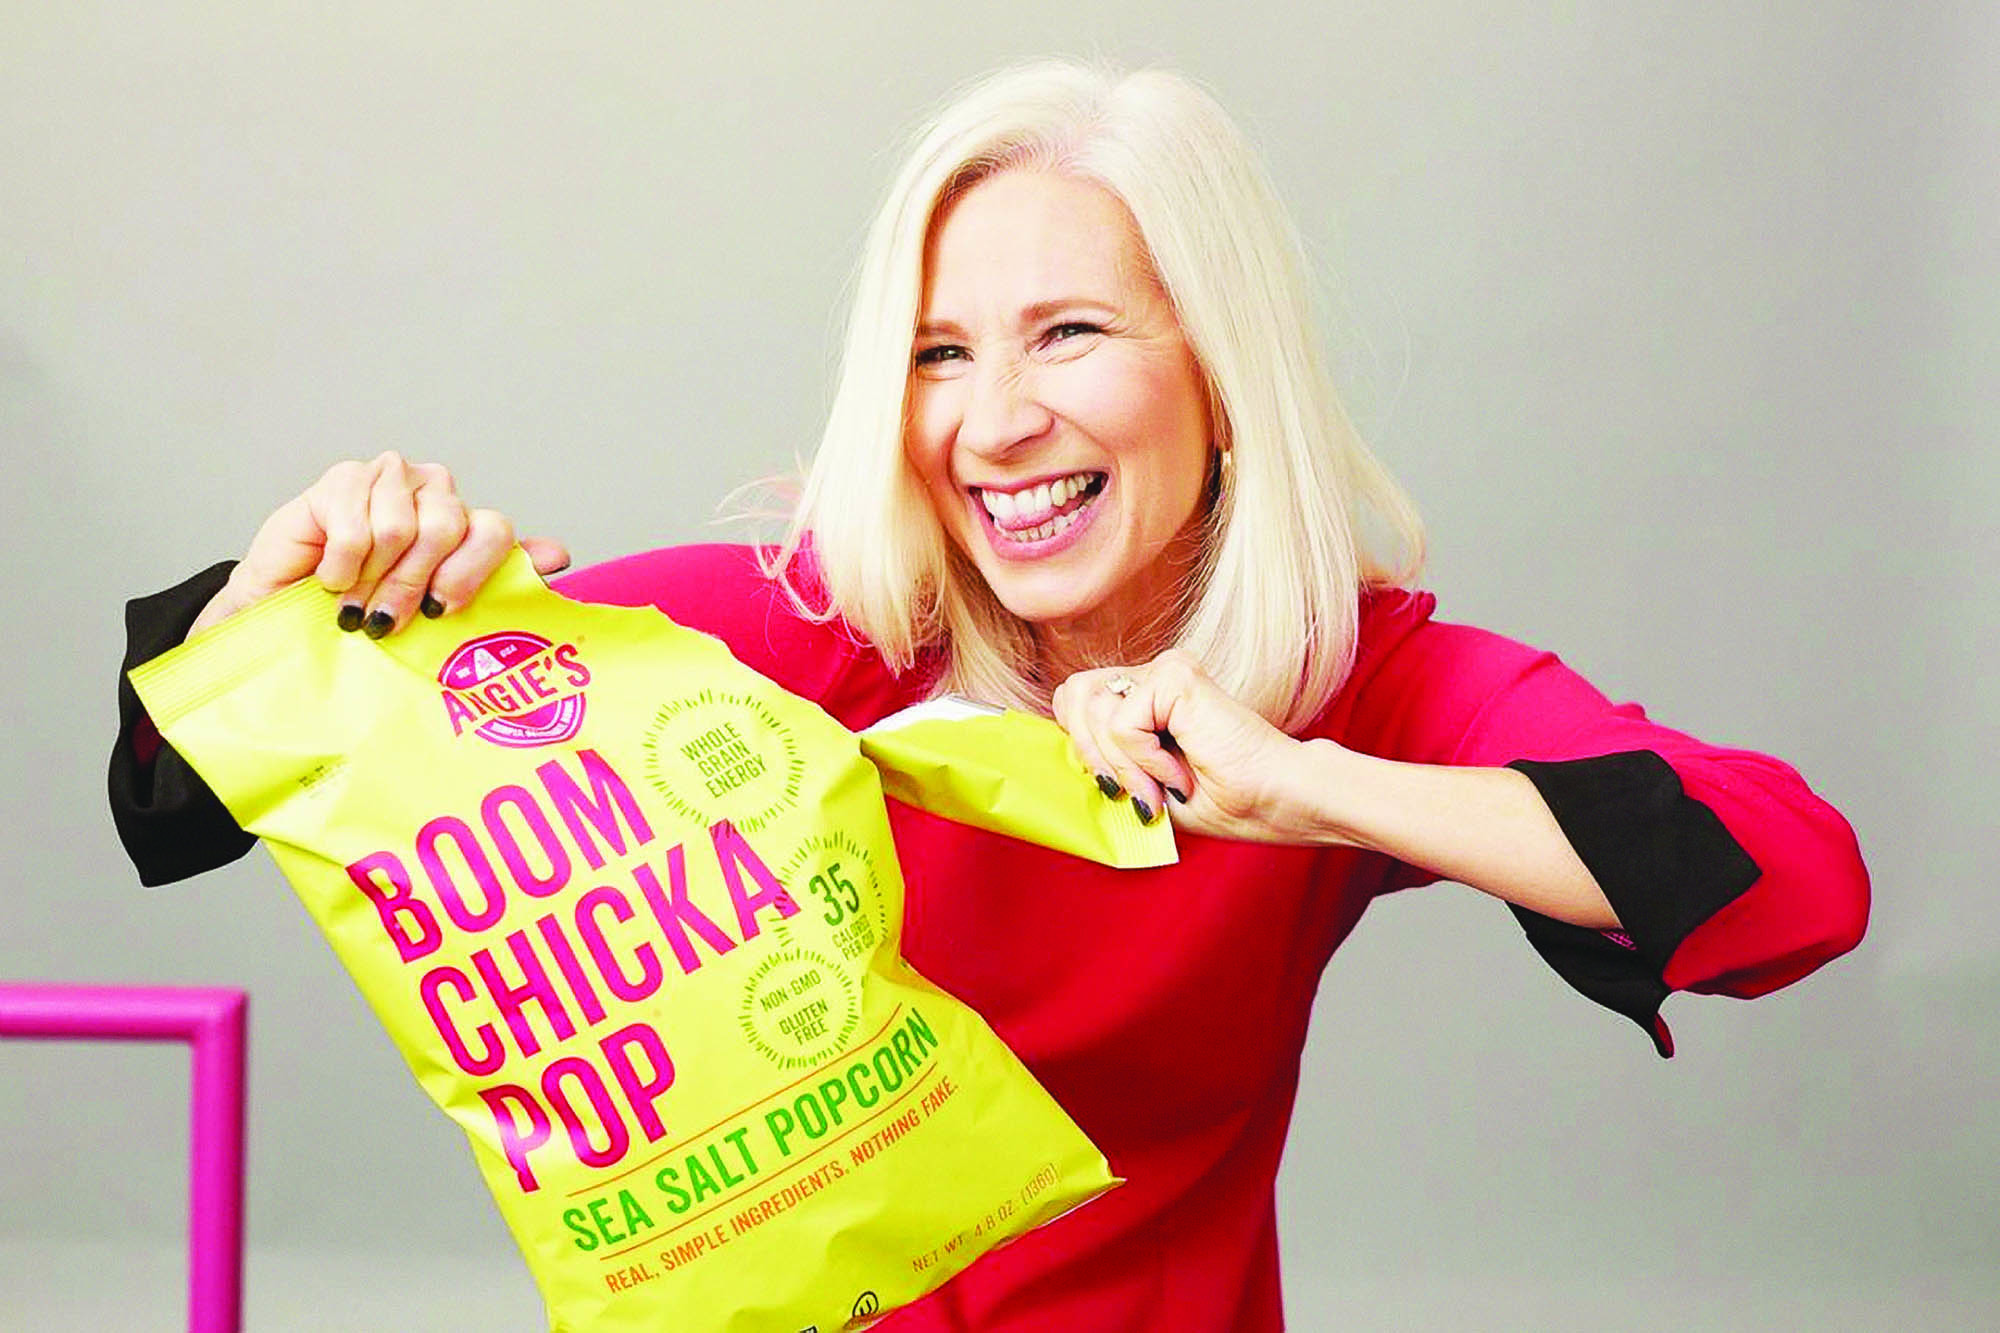 Woman in a fuchsia long sleeve shirt smiling while tearing open a bag of 'Boom Chicka Pop' popcorn